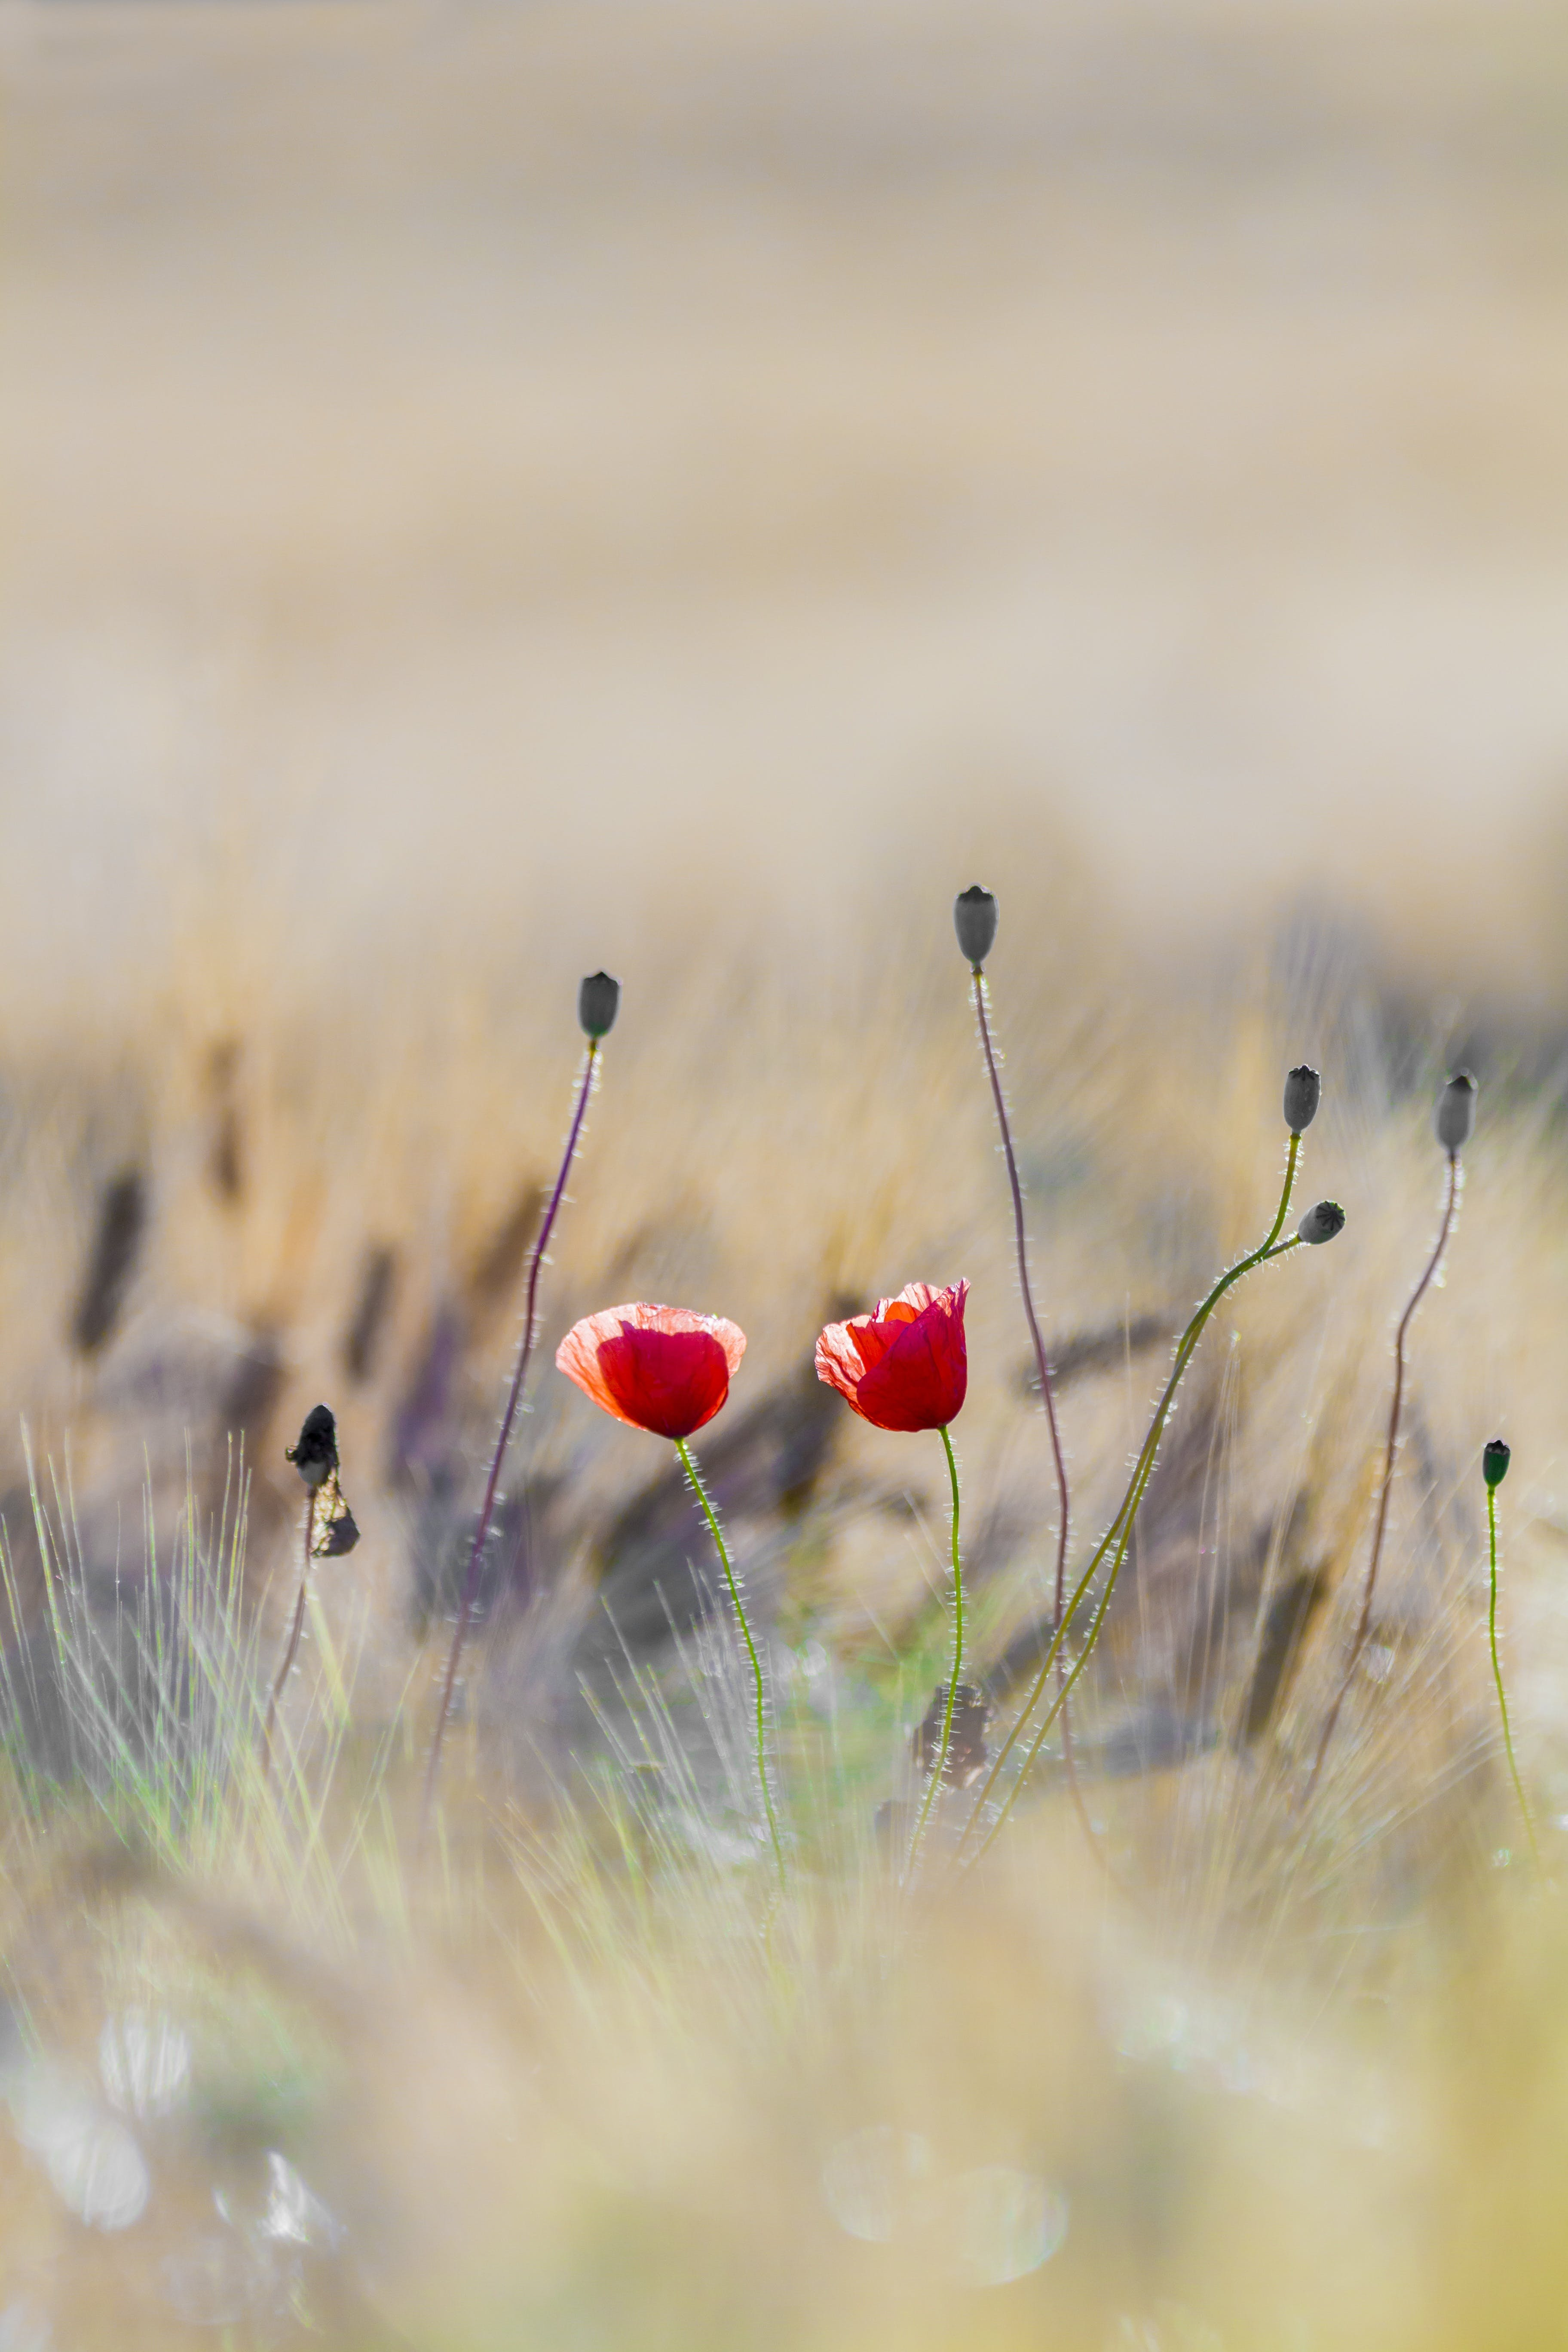 Red Flowers in Middle of Grass Field